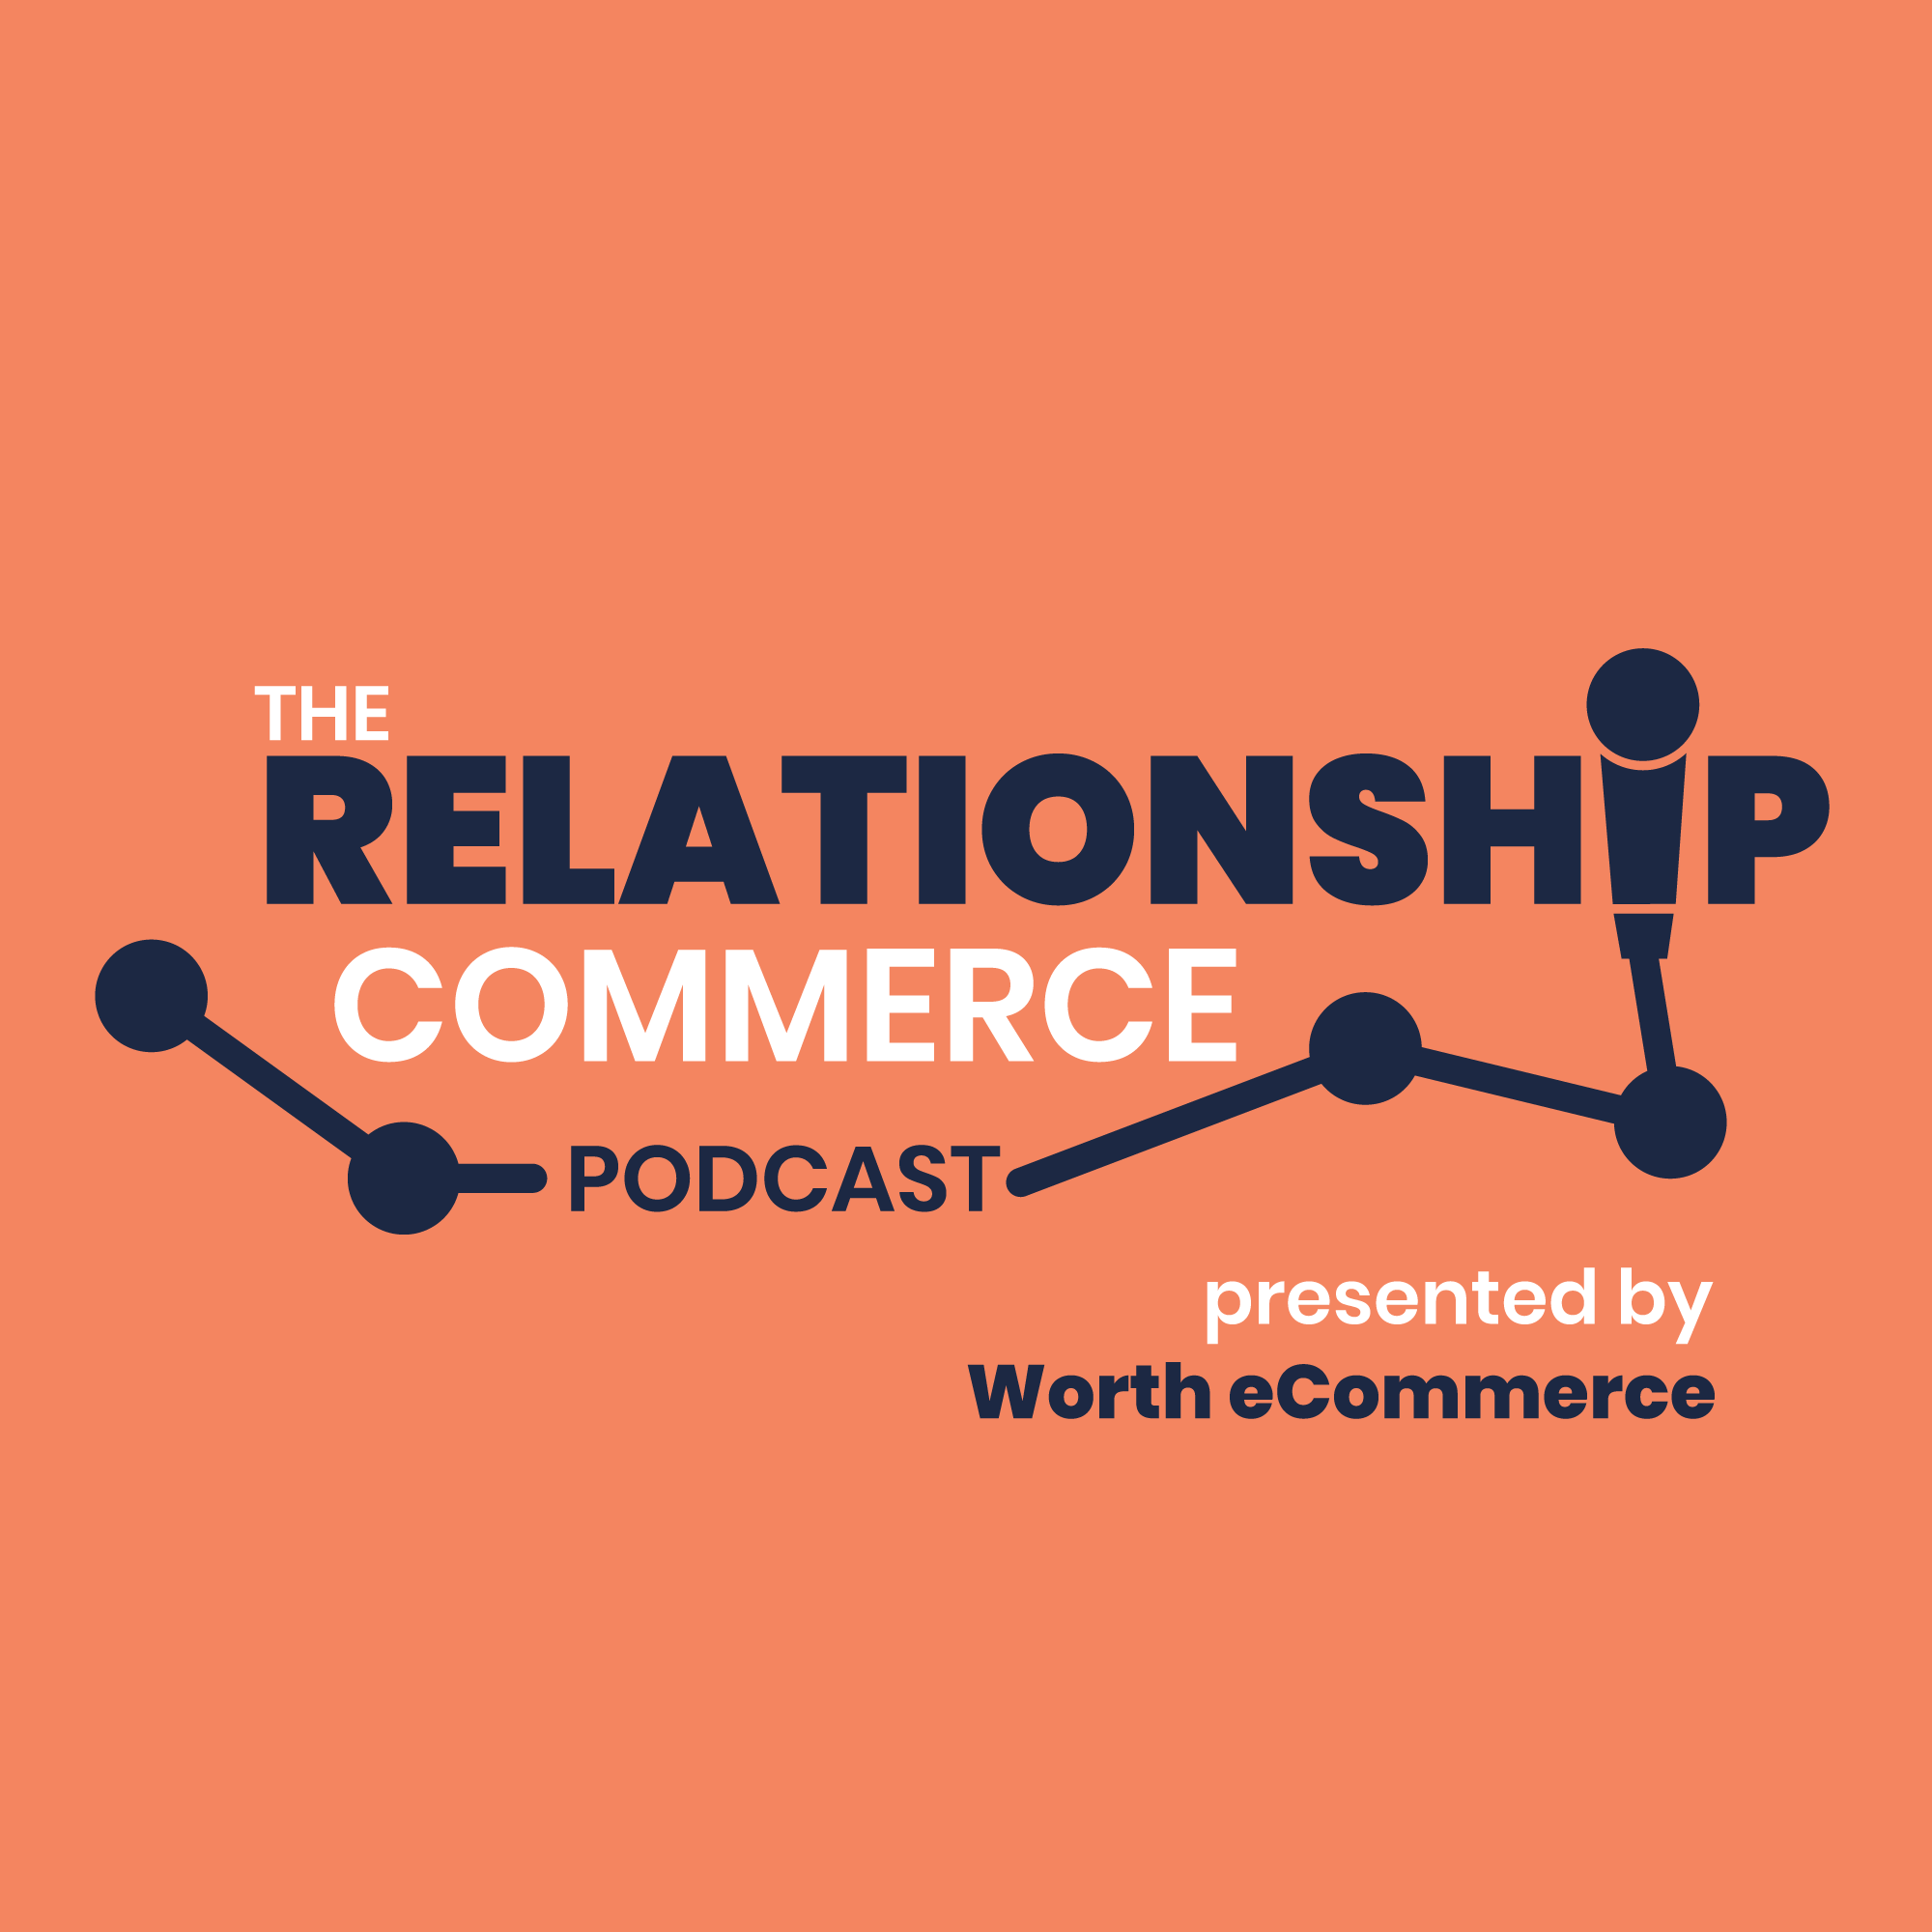 The Relationship Commerce Podcast show art